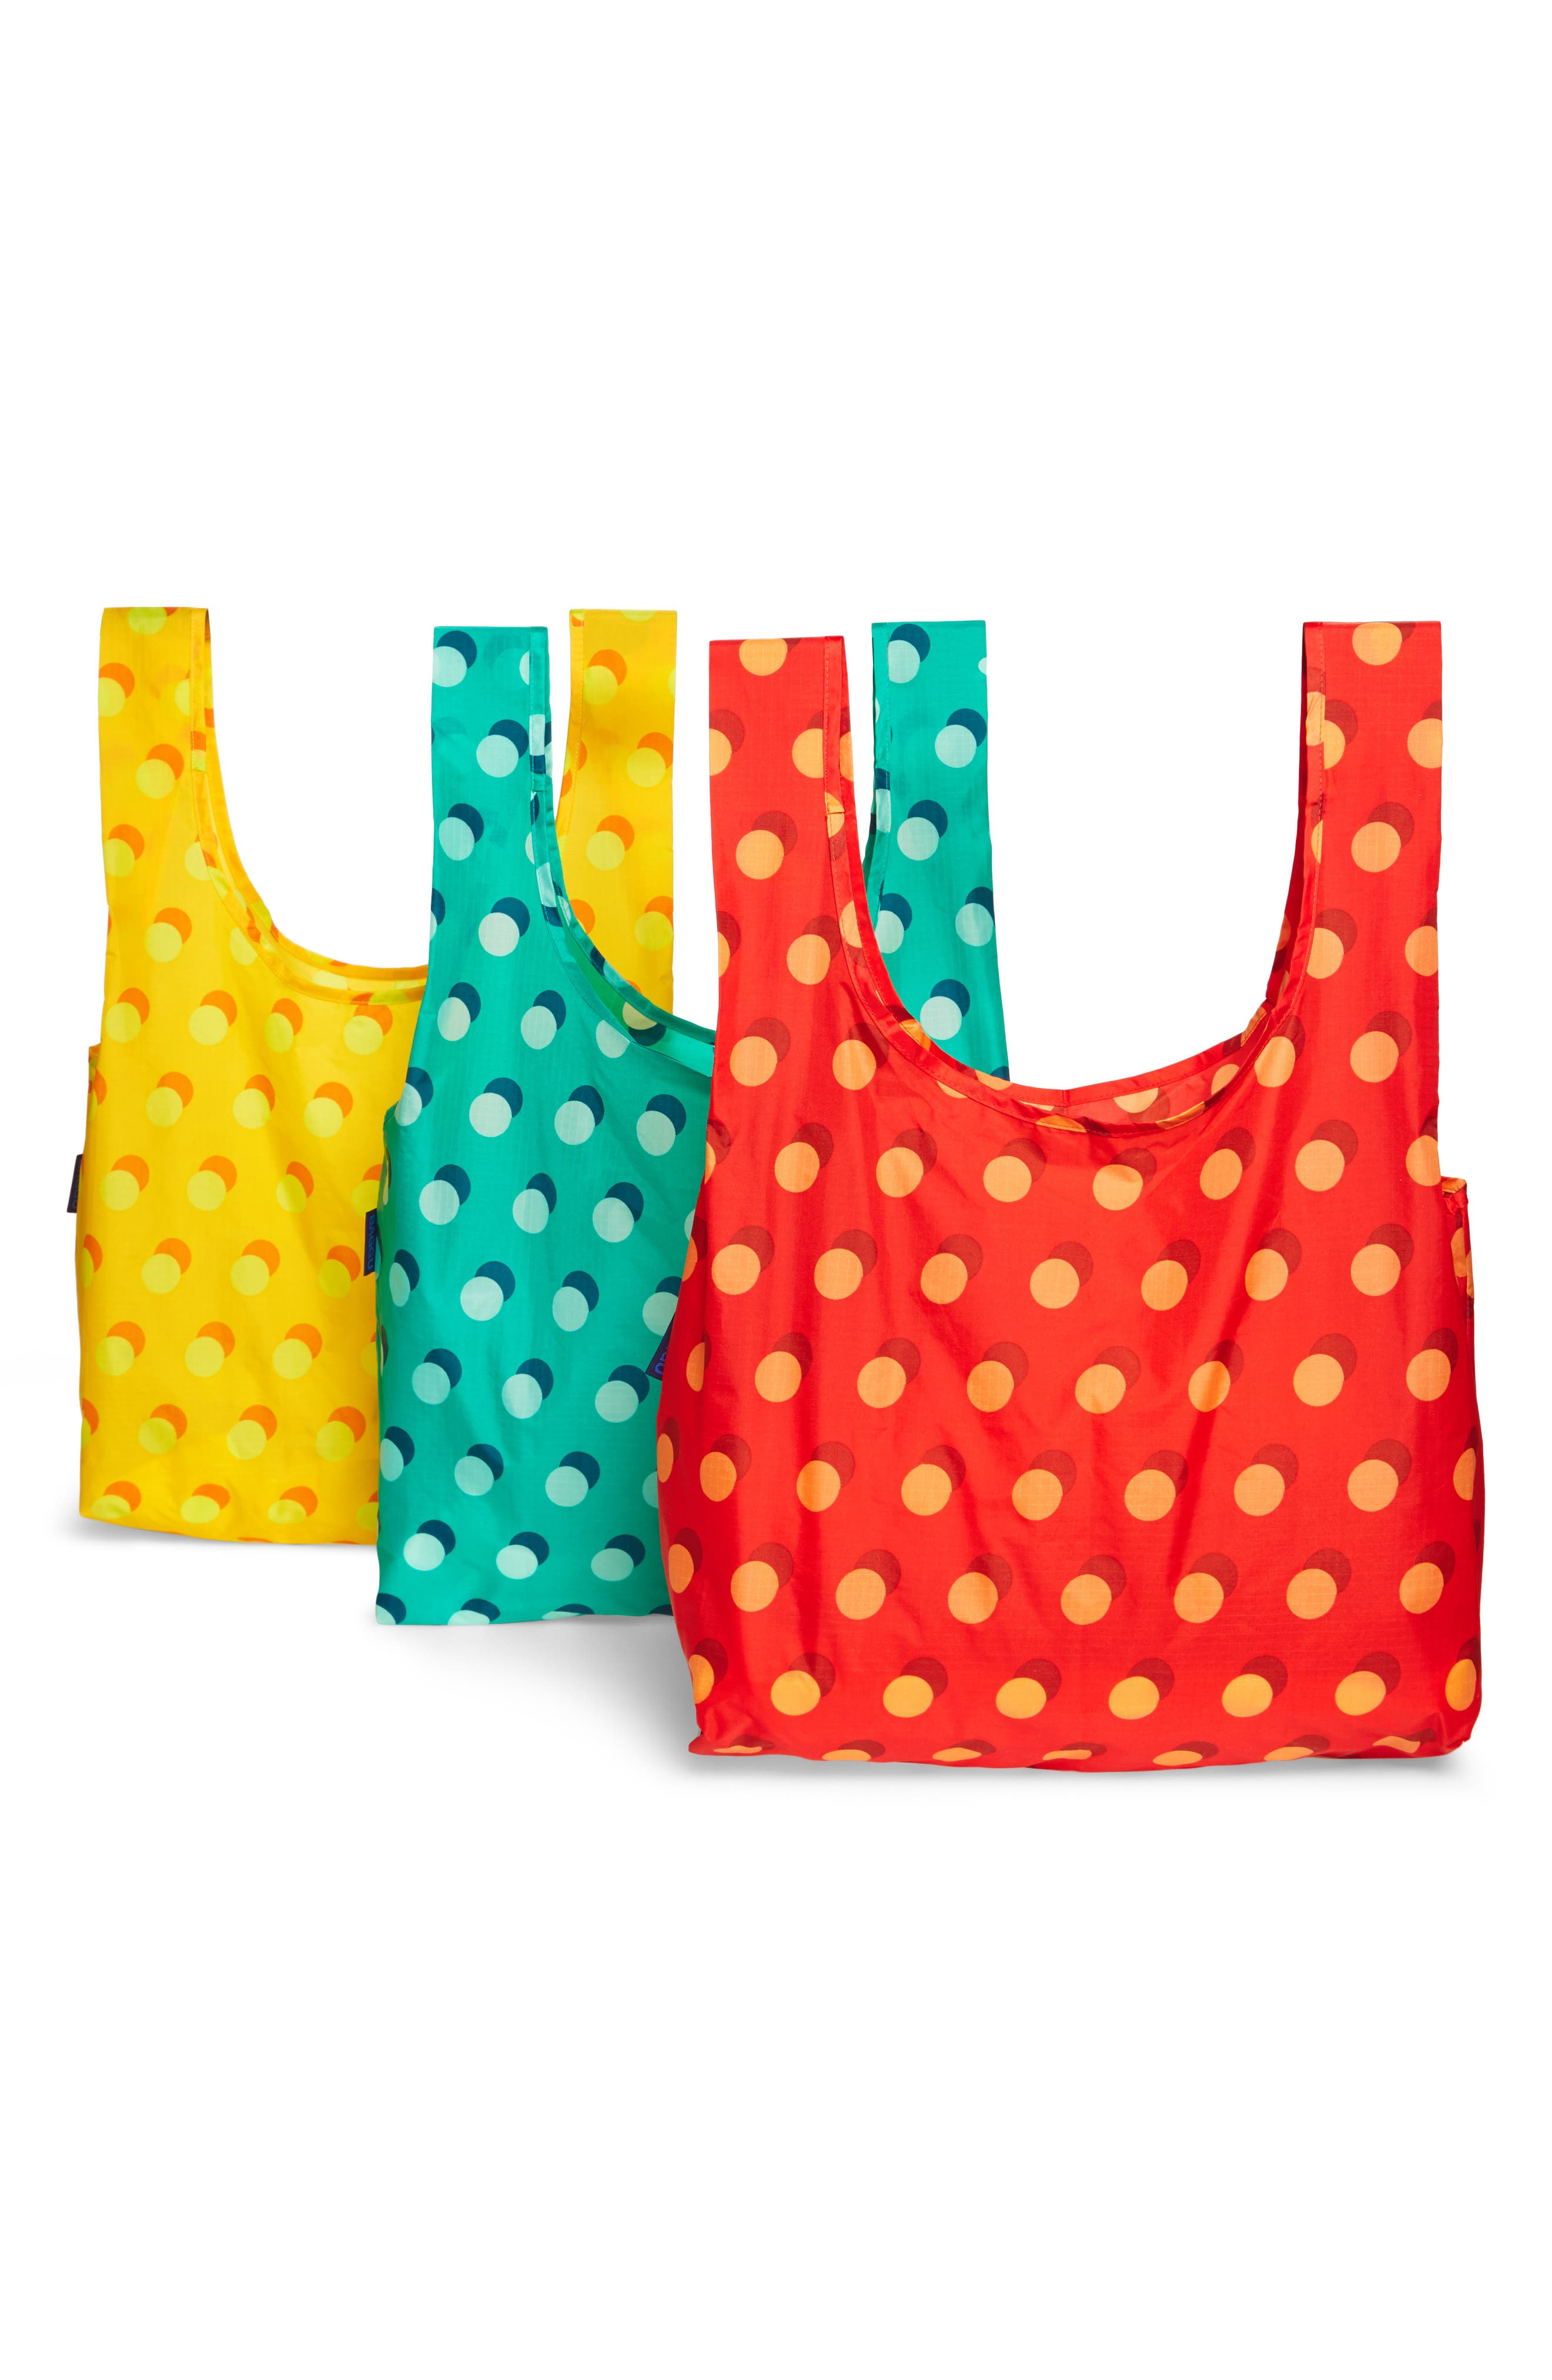 Disco Dot Set of 3 Nylon Totes,                             Main thumbnail 1, color,                             600